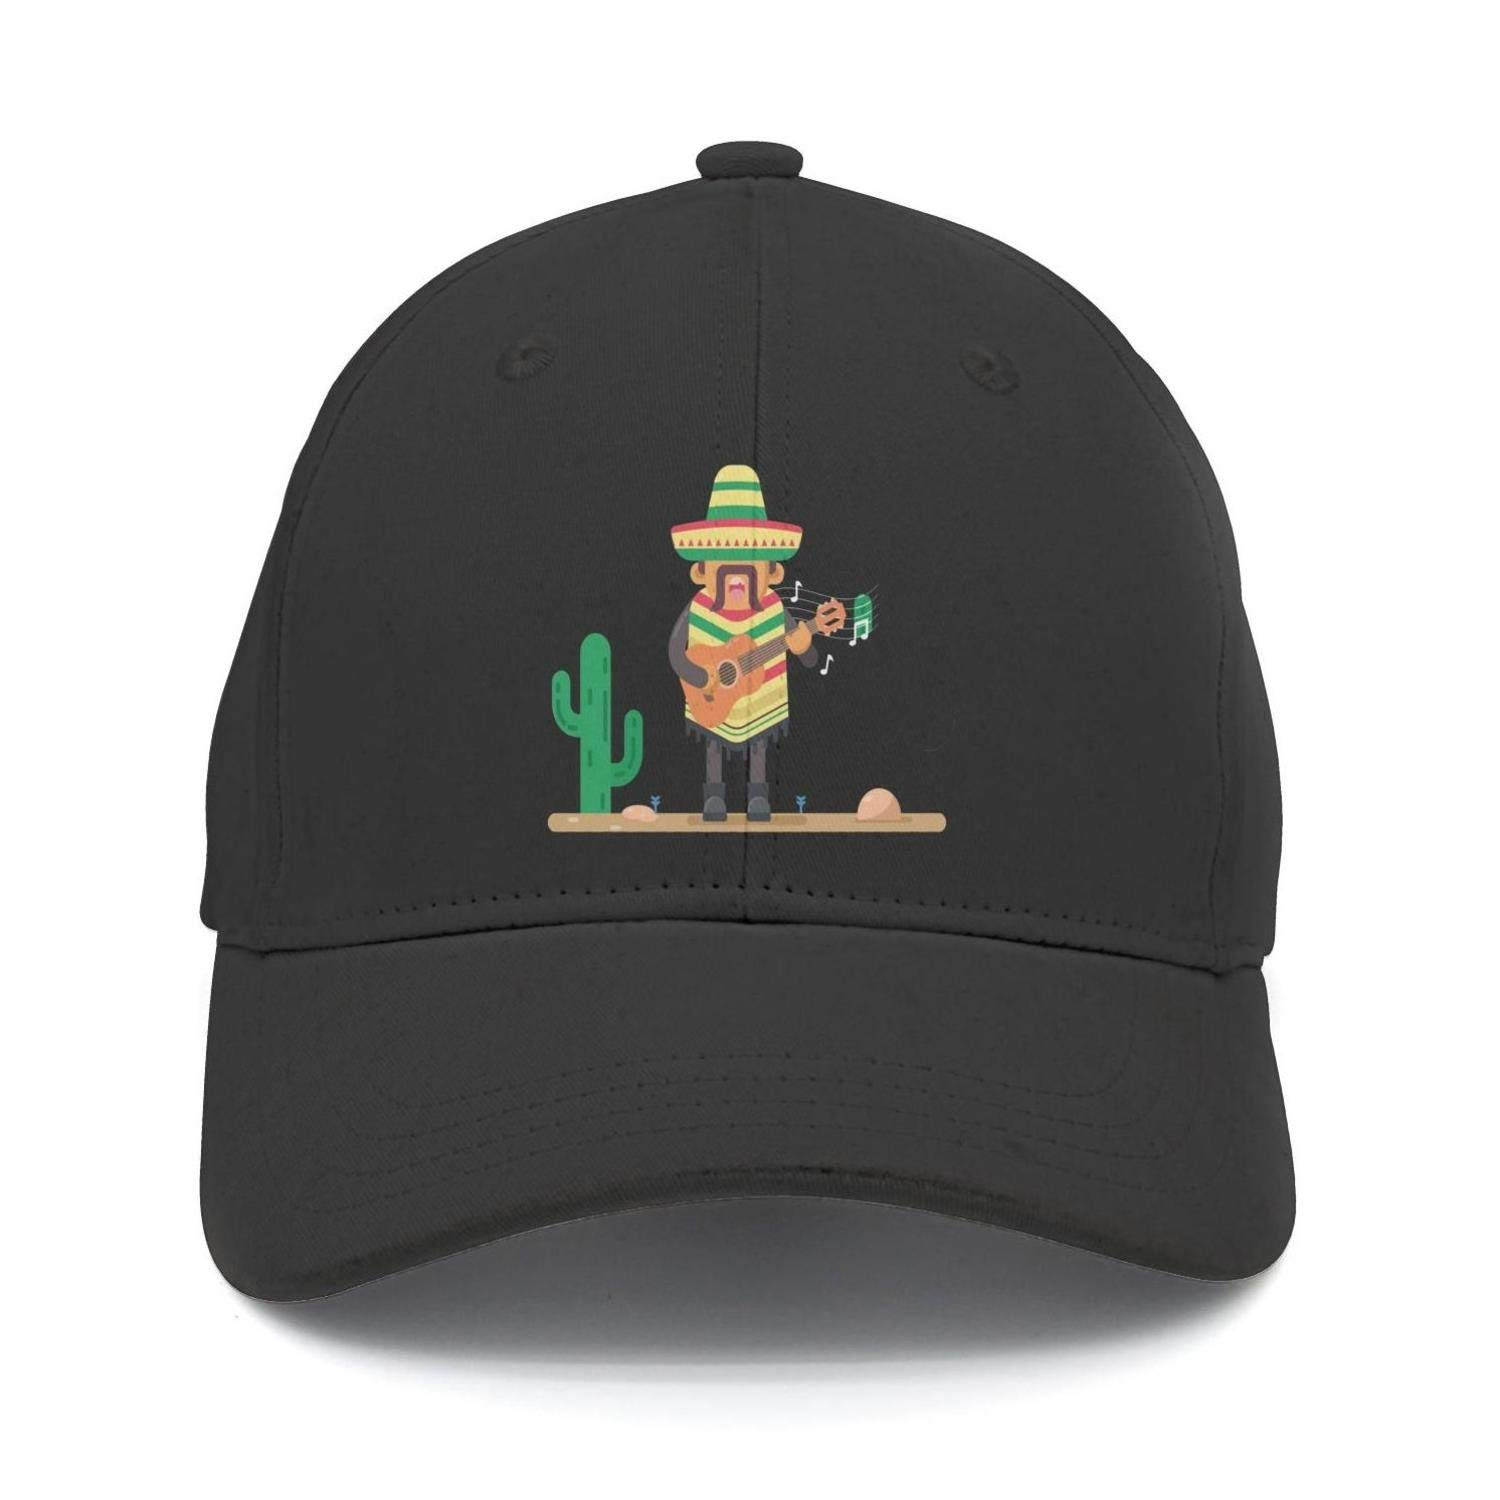 e2a806c7ebb Get Quotations · SNB WY Mexico Mexican cactus Baseball Hat Fitted Funny Cap  Adjustable